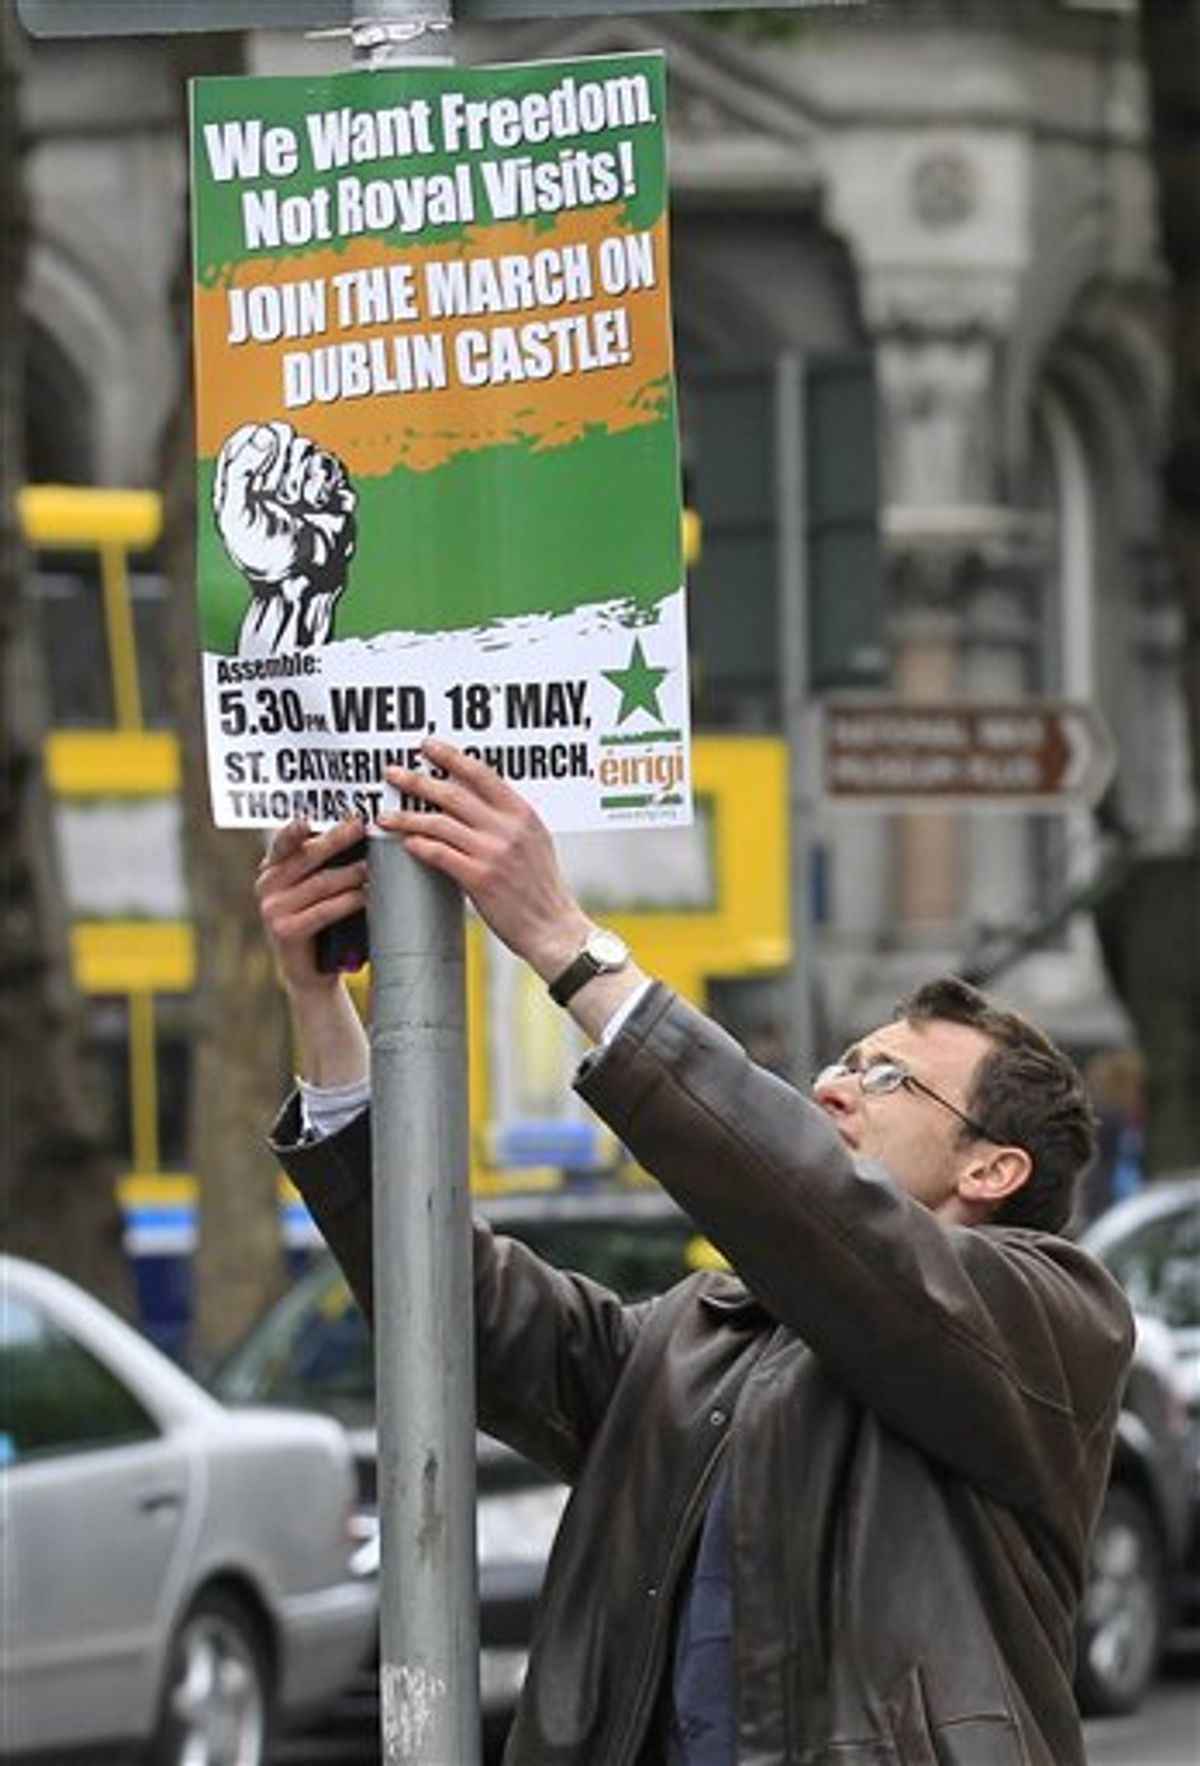 A protester puts up a placard to protest at the visit by Britain's Queen Elizabeth II to Ireland, Monday, May, 16, 2011.  Queen Elizabeth II begins a four day visit to Ireland on Tuesday for the first time since Irish Independence.  (AP Photo/Peter Morrison) (AP)